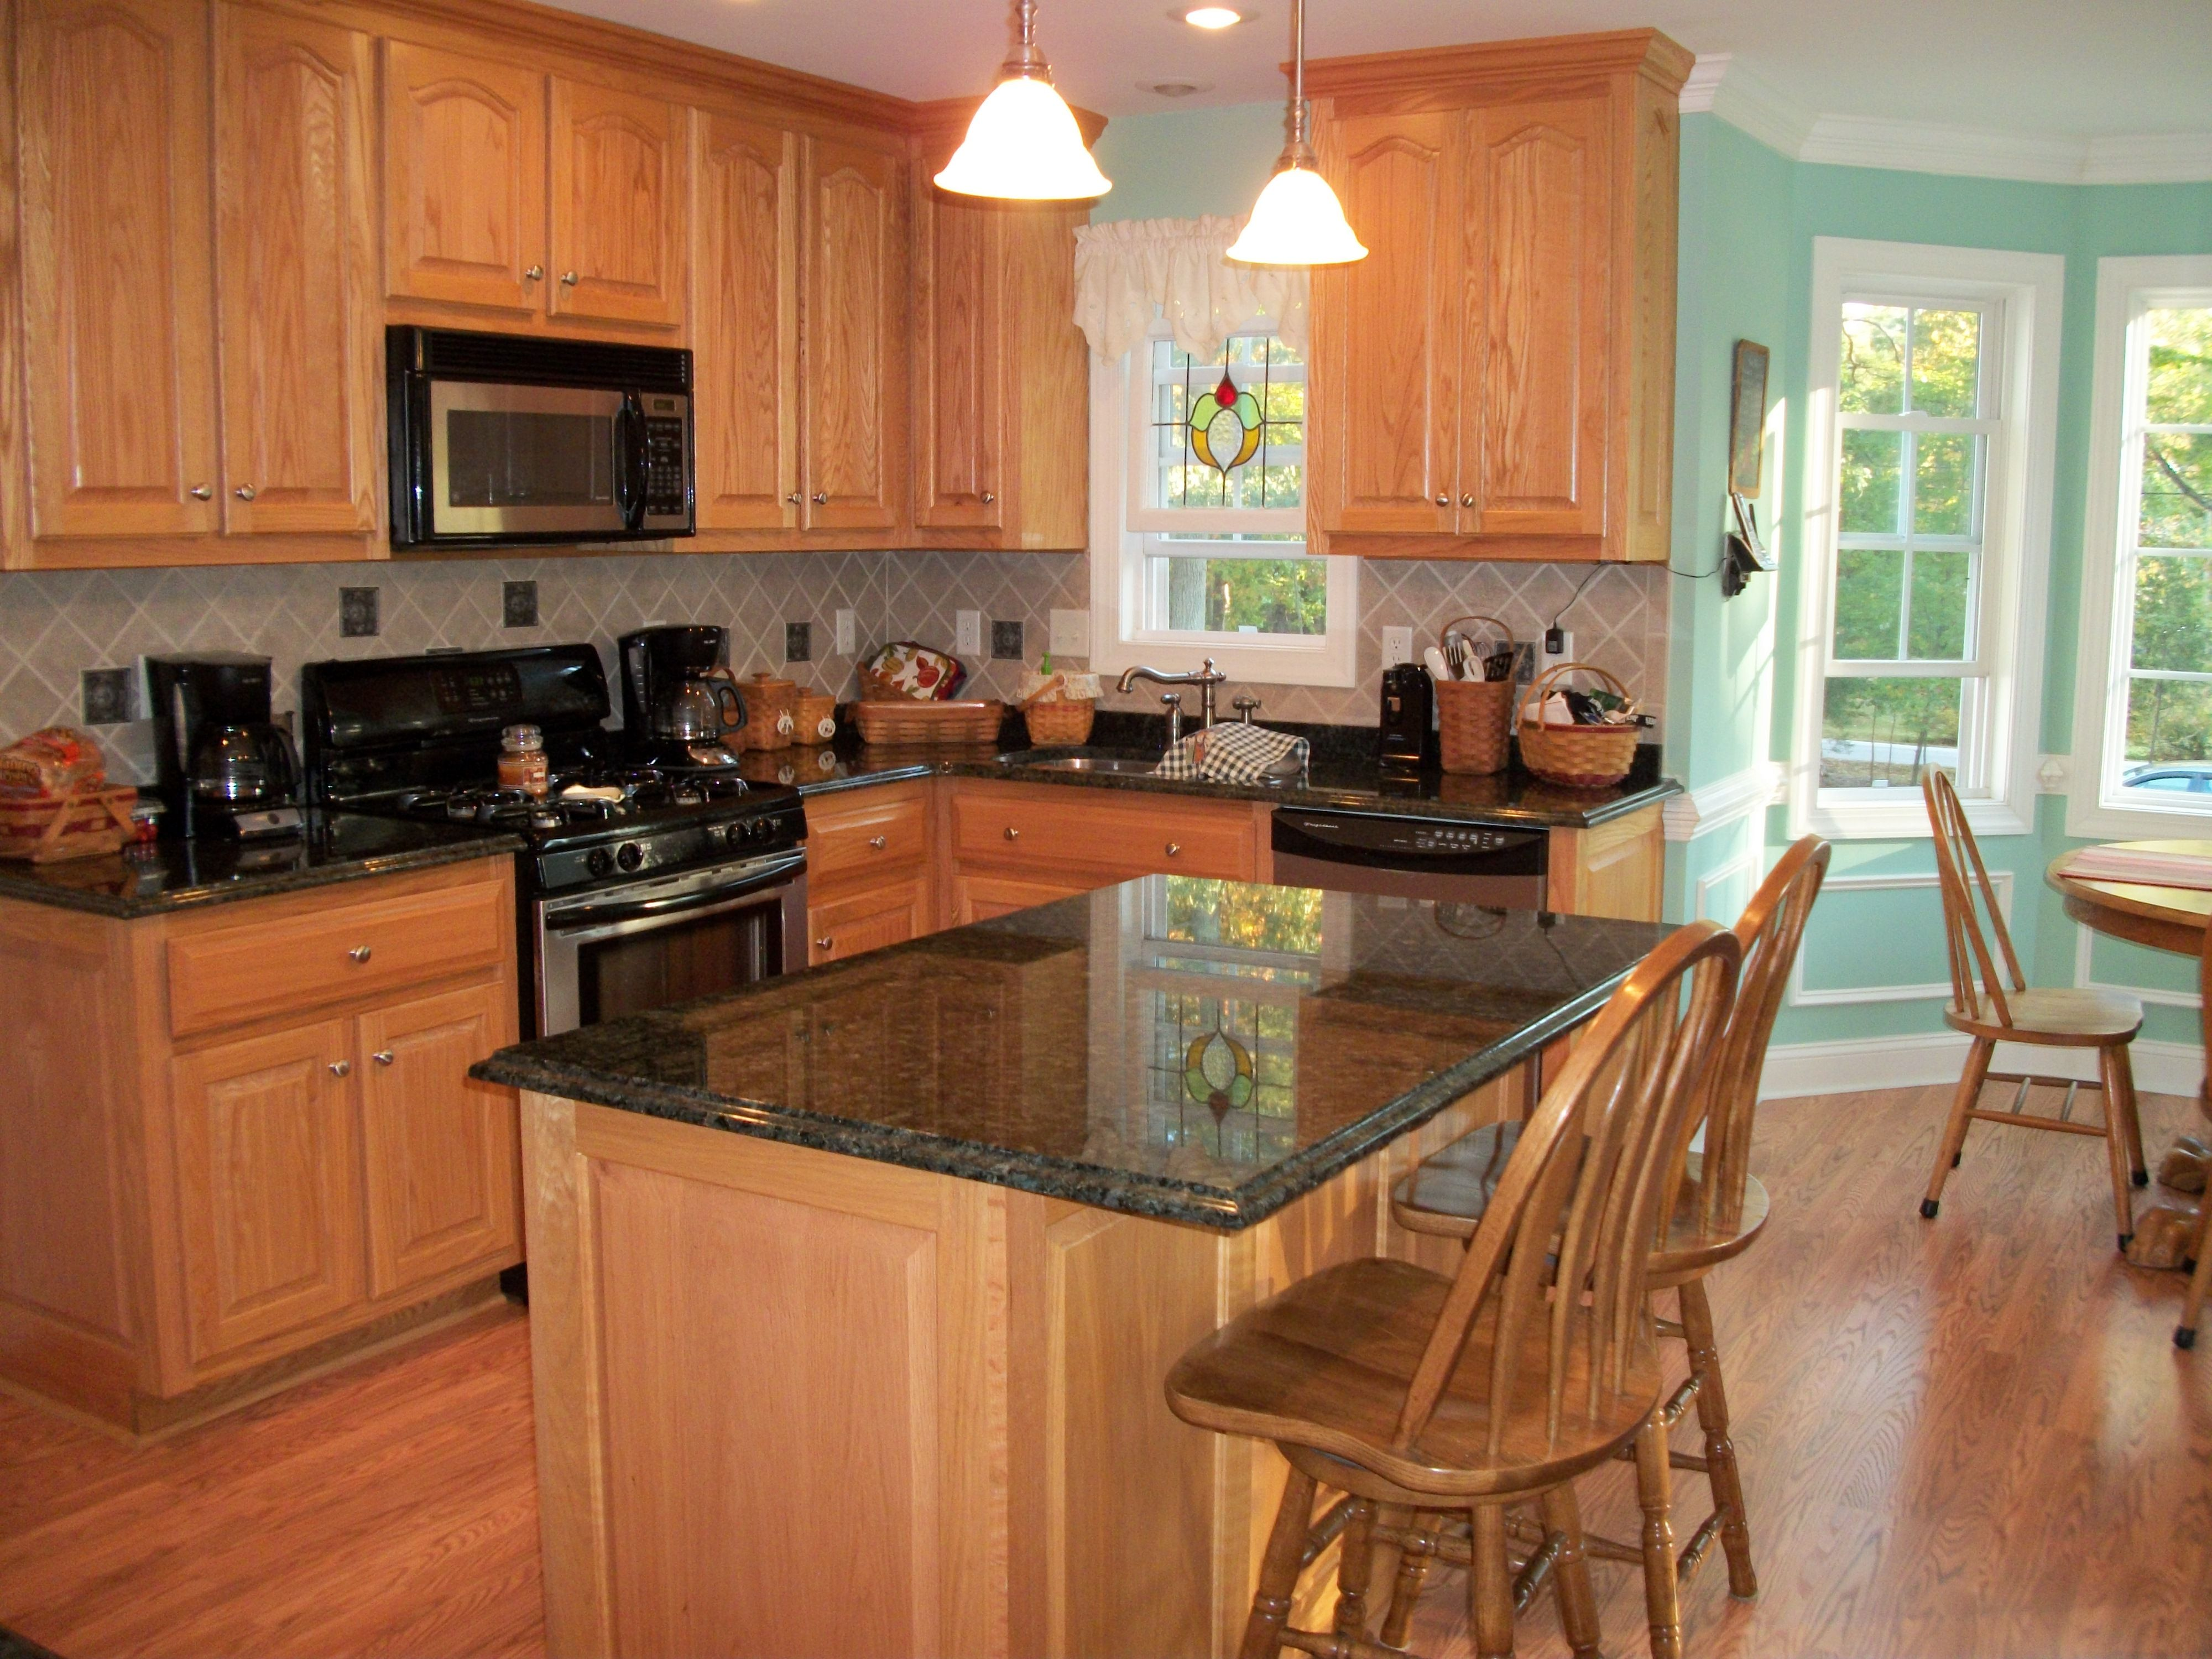 pictures of countertops and backsplashes | Beautiful Kitchen ...